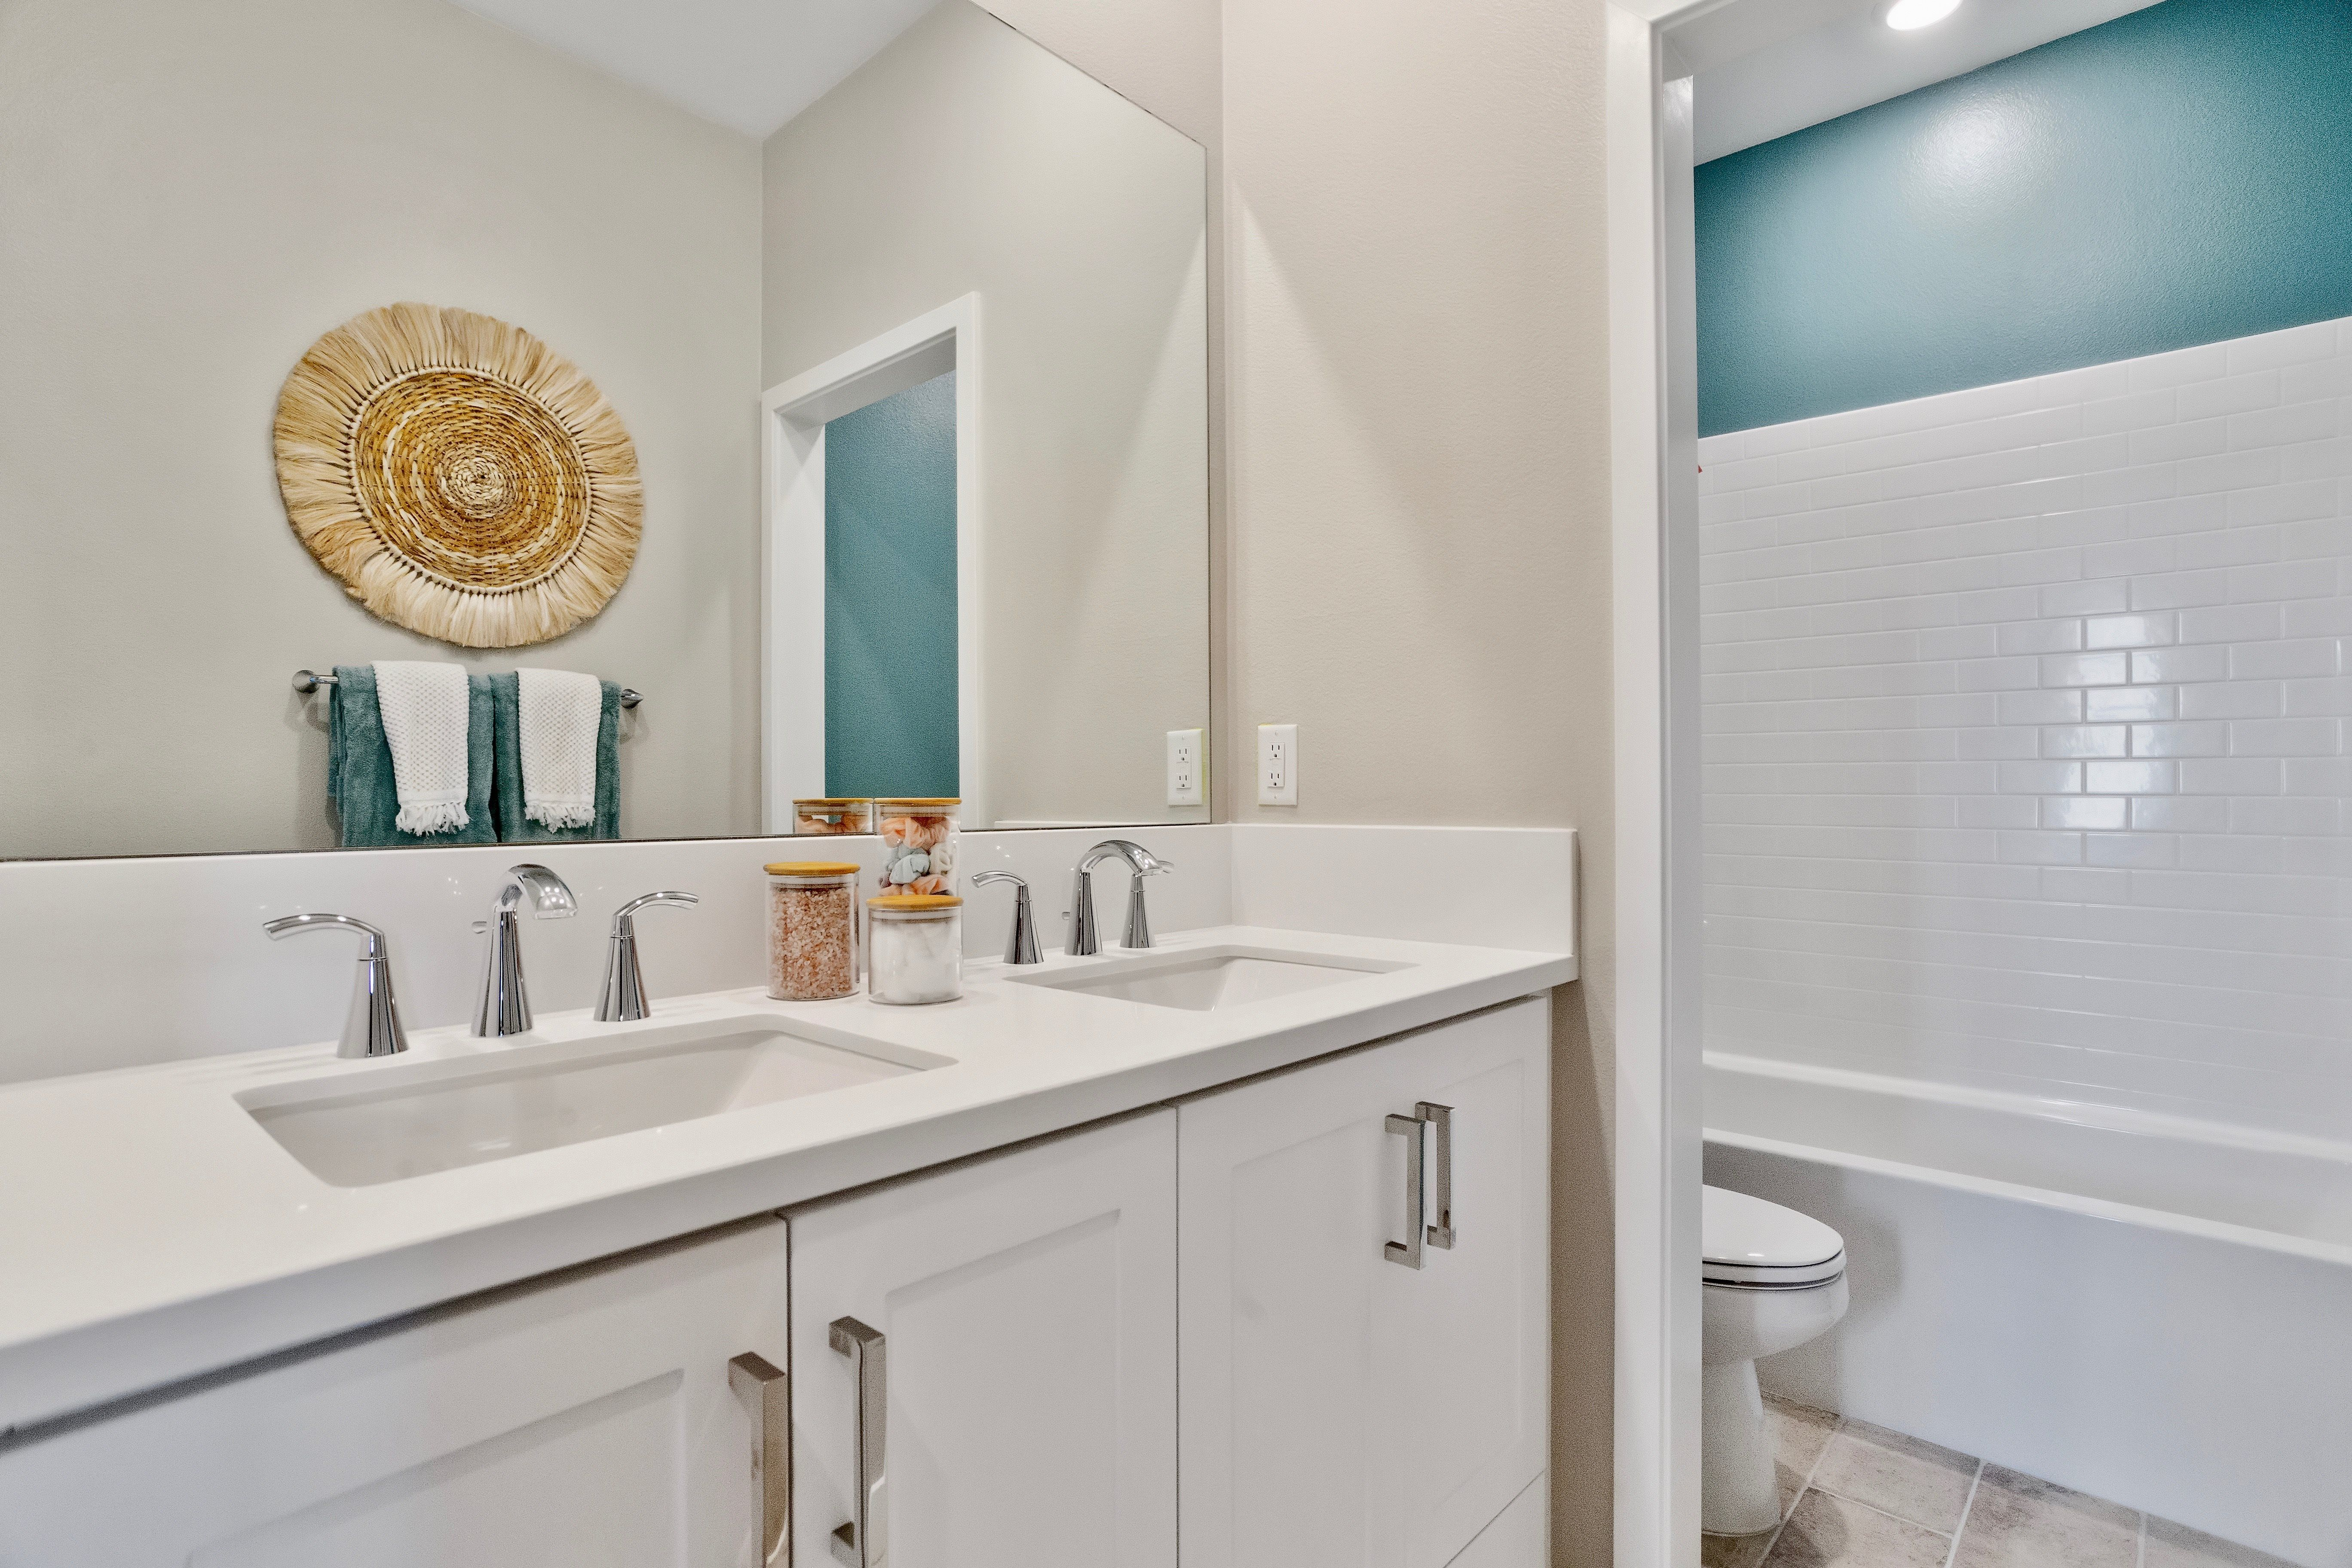 Bathroom featured in the Residence 3 By Lennar in Los Angeles, CA